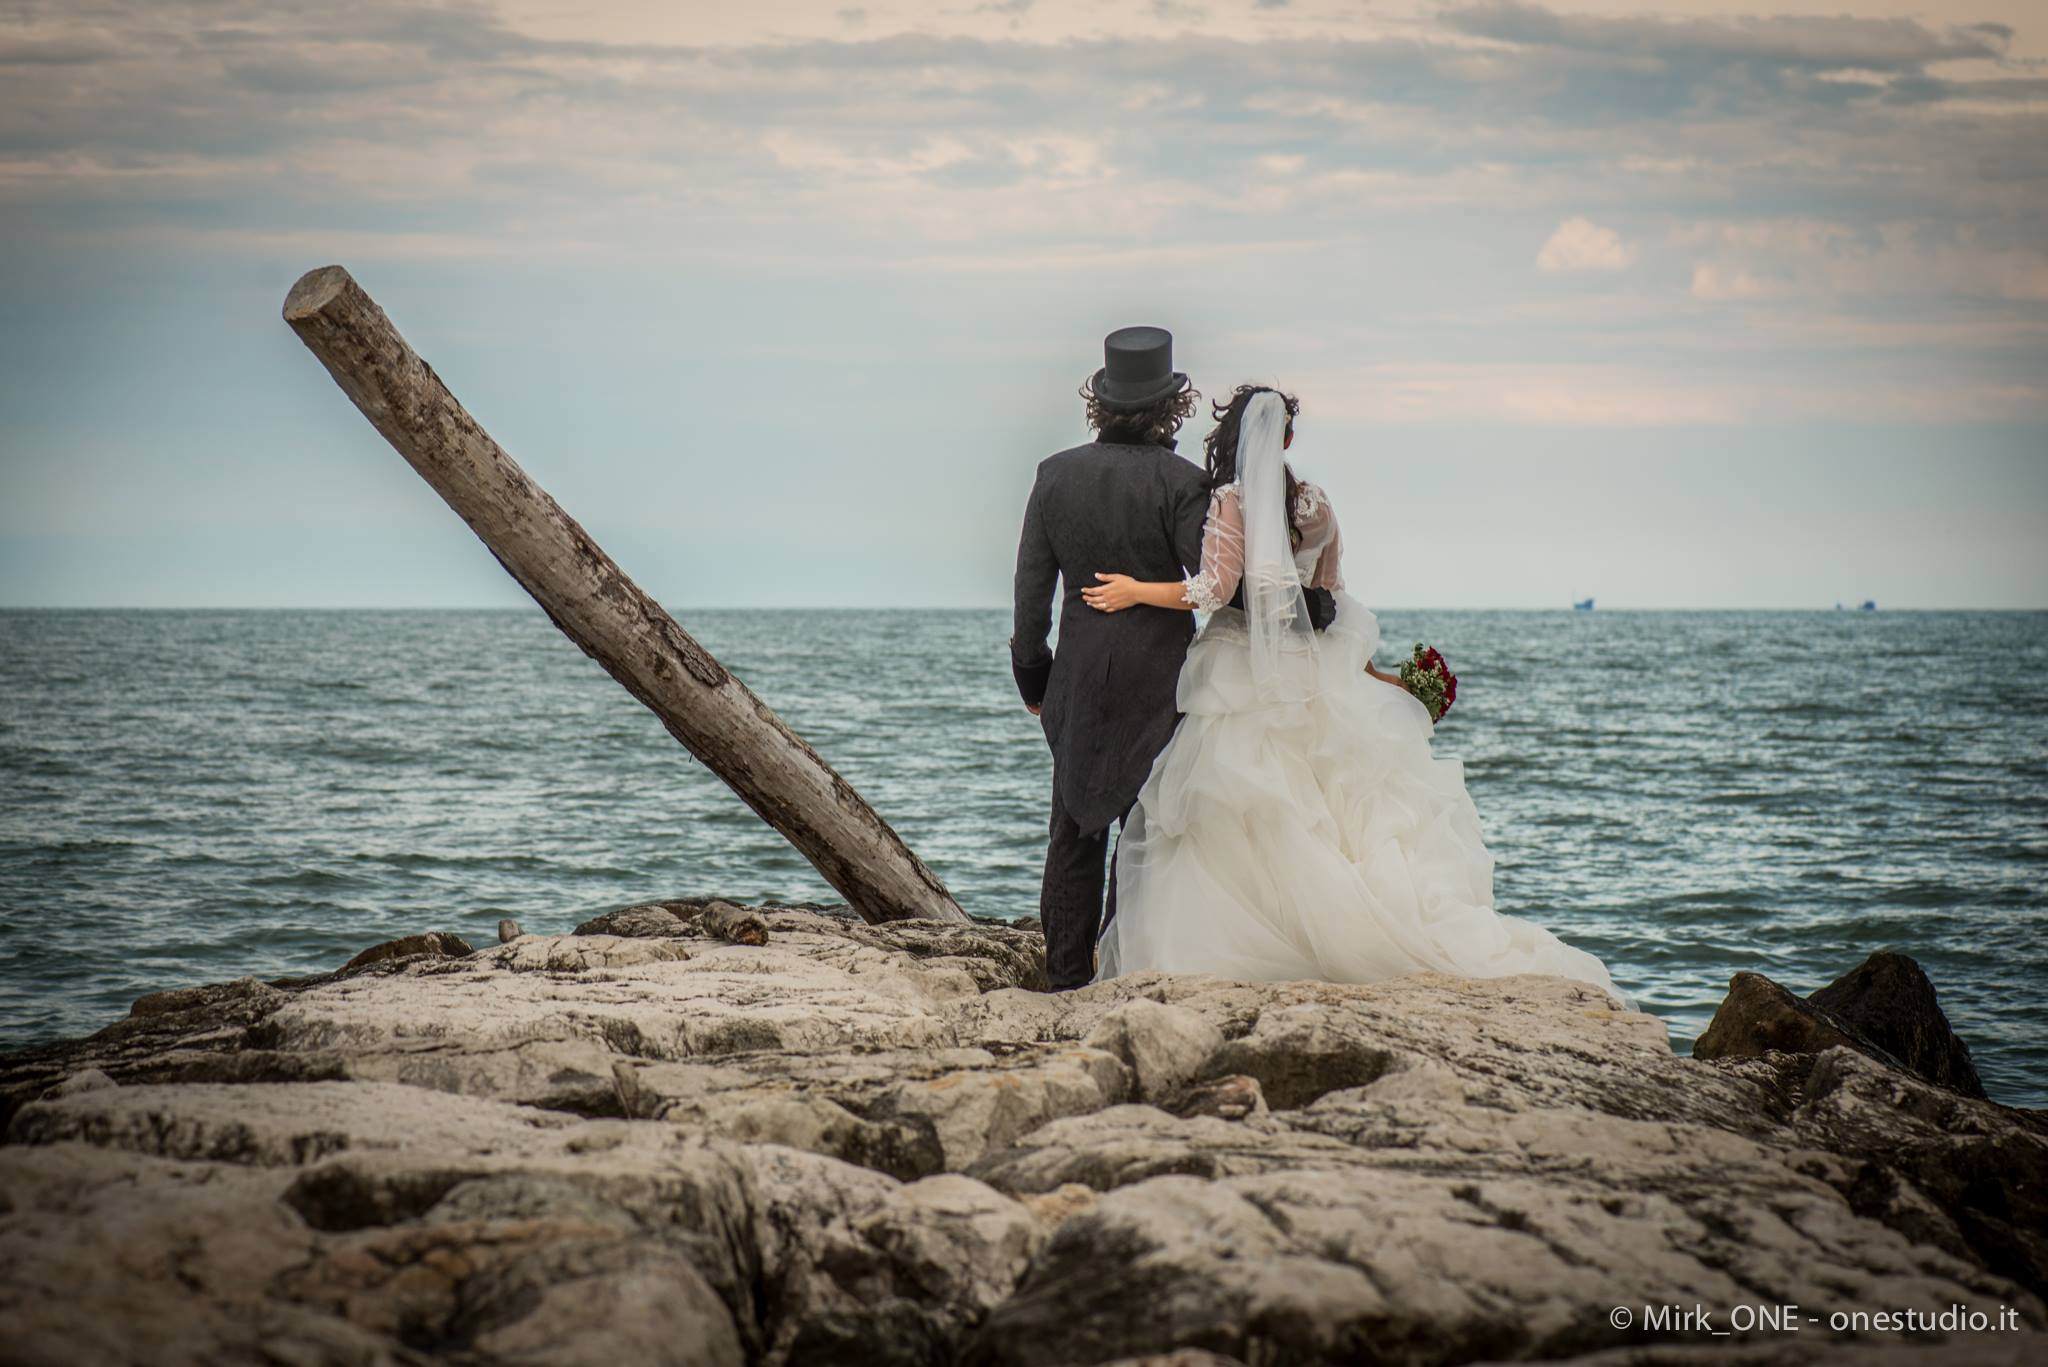 http://lnx.mirkone.it/wp-content/uploads/2015/07/mirk_ONE-fotografo-matrimonio-00824.jpg